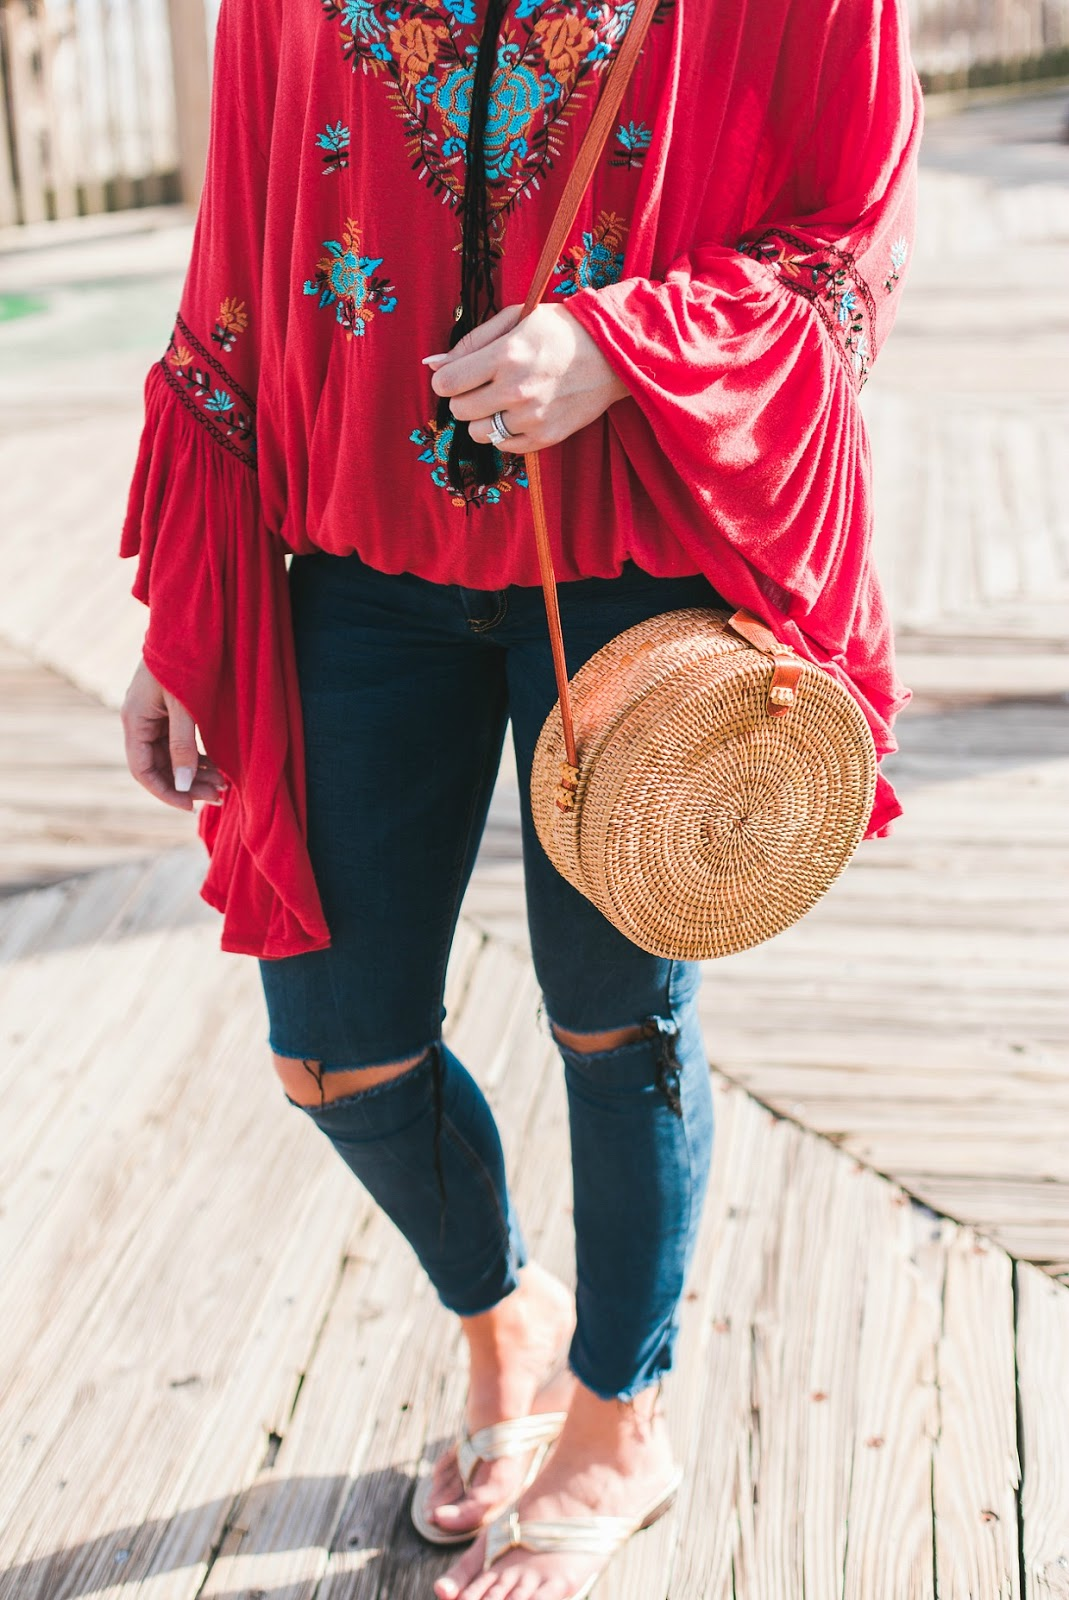 free people outfit, straw crossbody bag, round straw crossbody, celine sunglasses, celine tilda, nc photographer, greensboro photographer, nc blogger, xo samantha brooke, samantha brooke, sam brooke photo, samantha brooke photography, life and messy hair